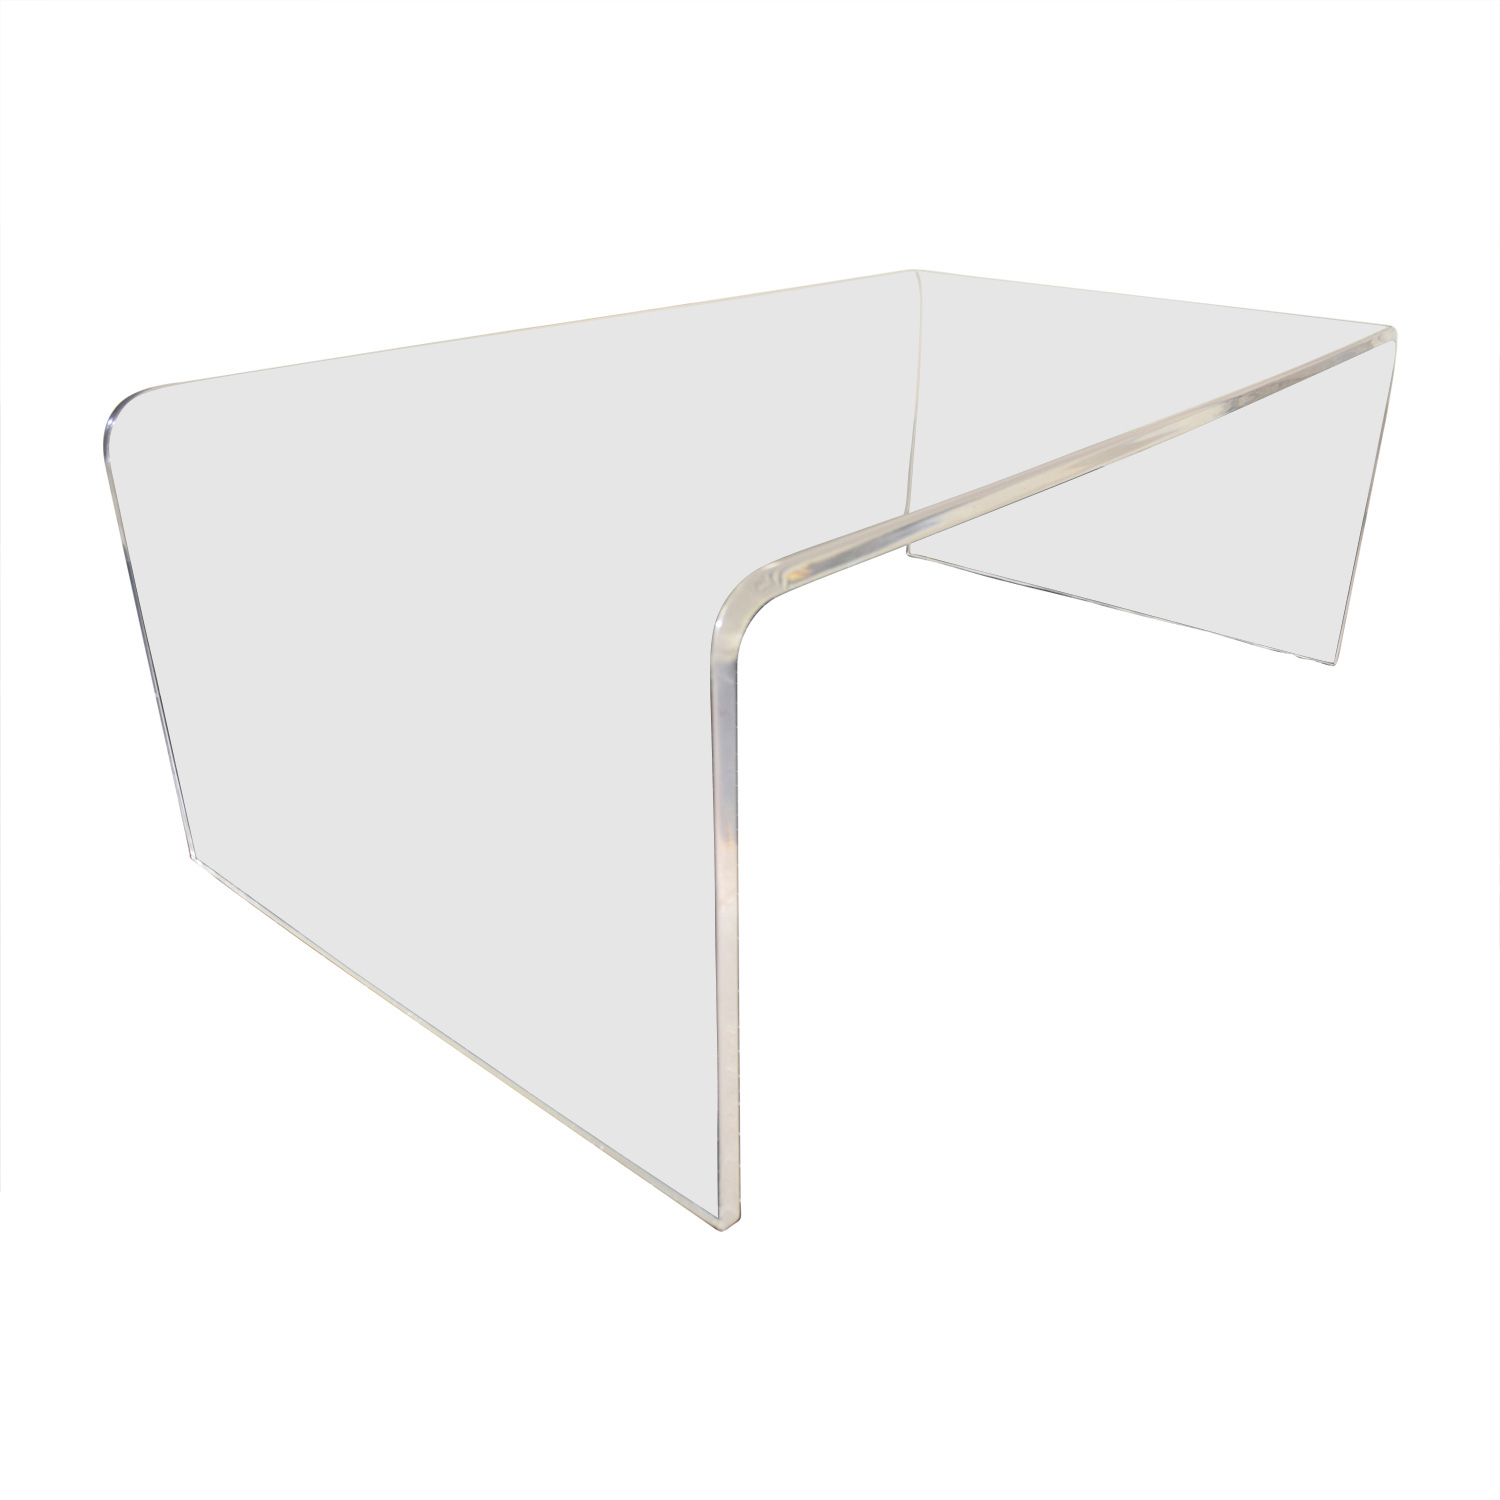 CB2 CB2 Acrylic Ghost Coffee Table price